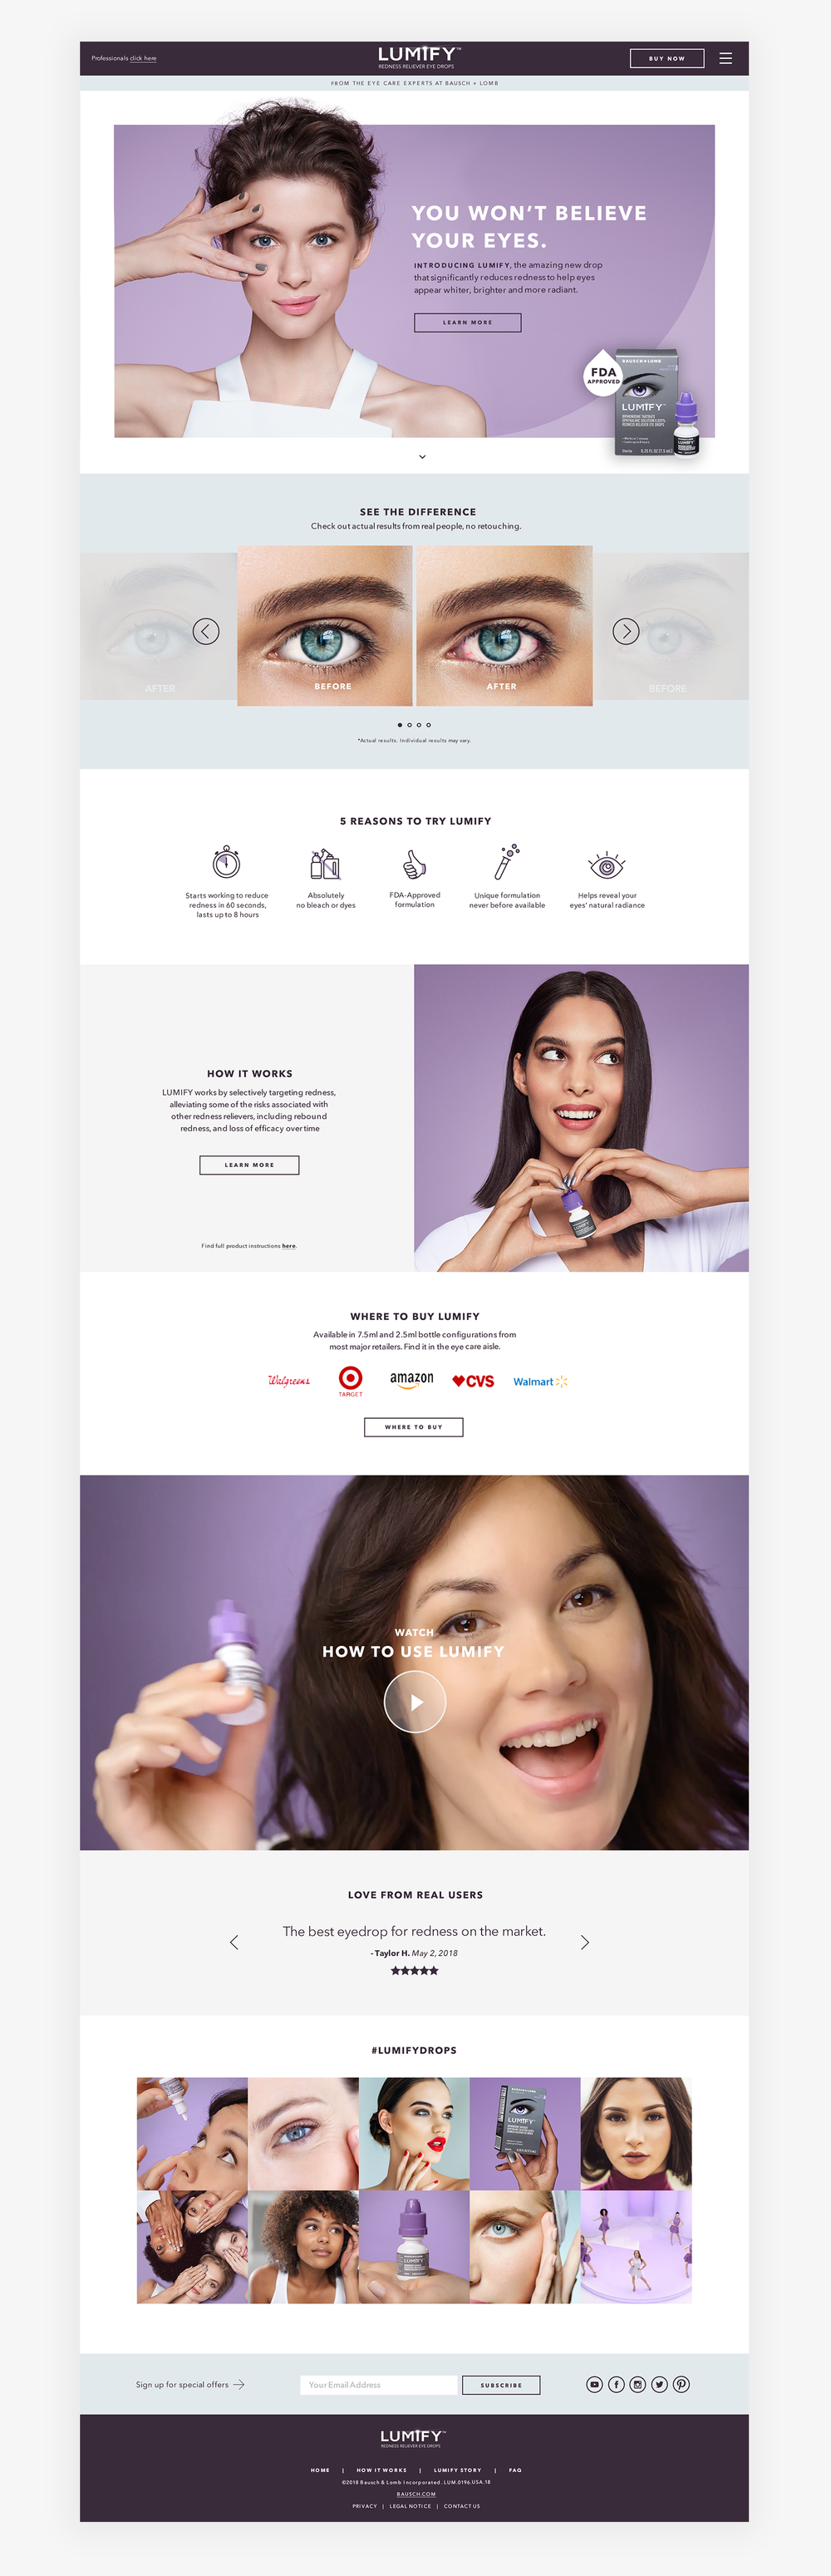 lumify-website.png